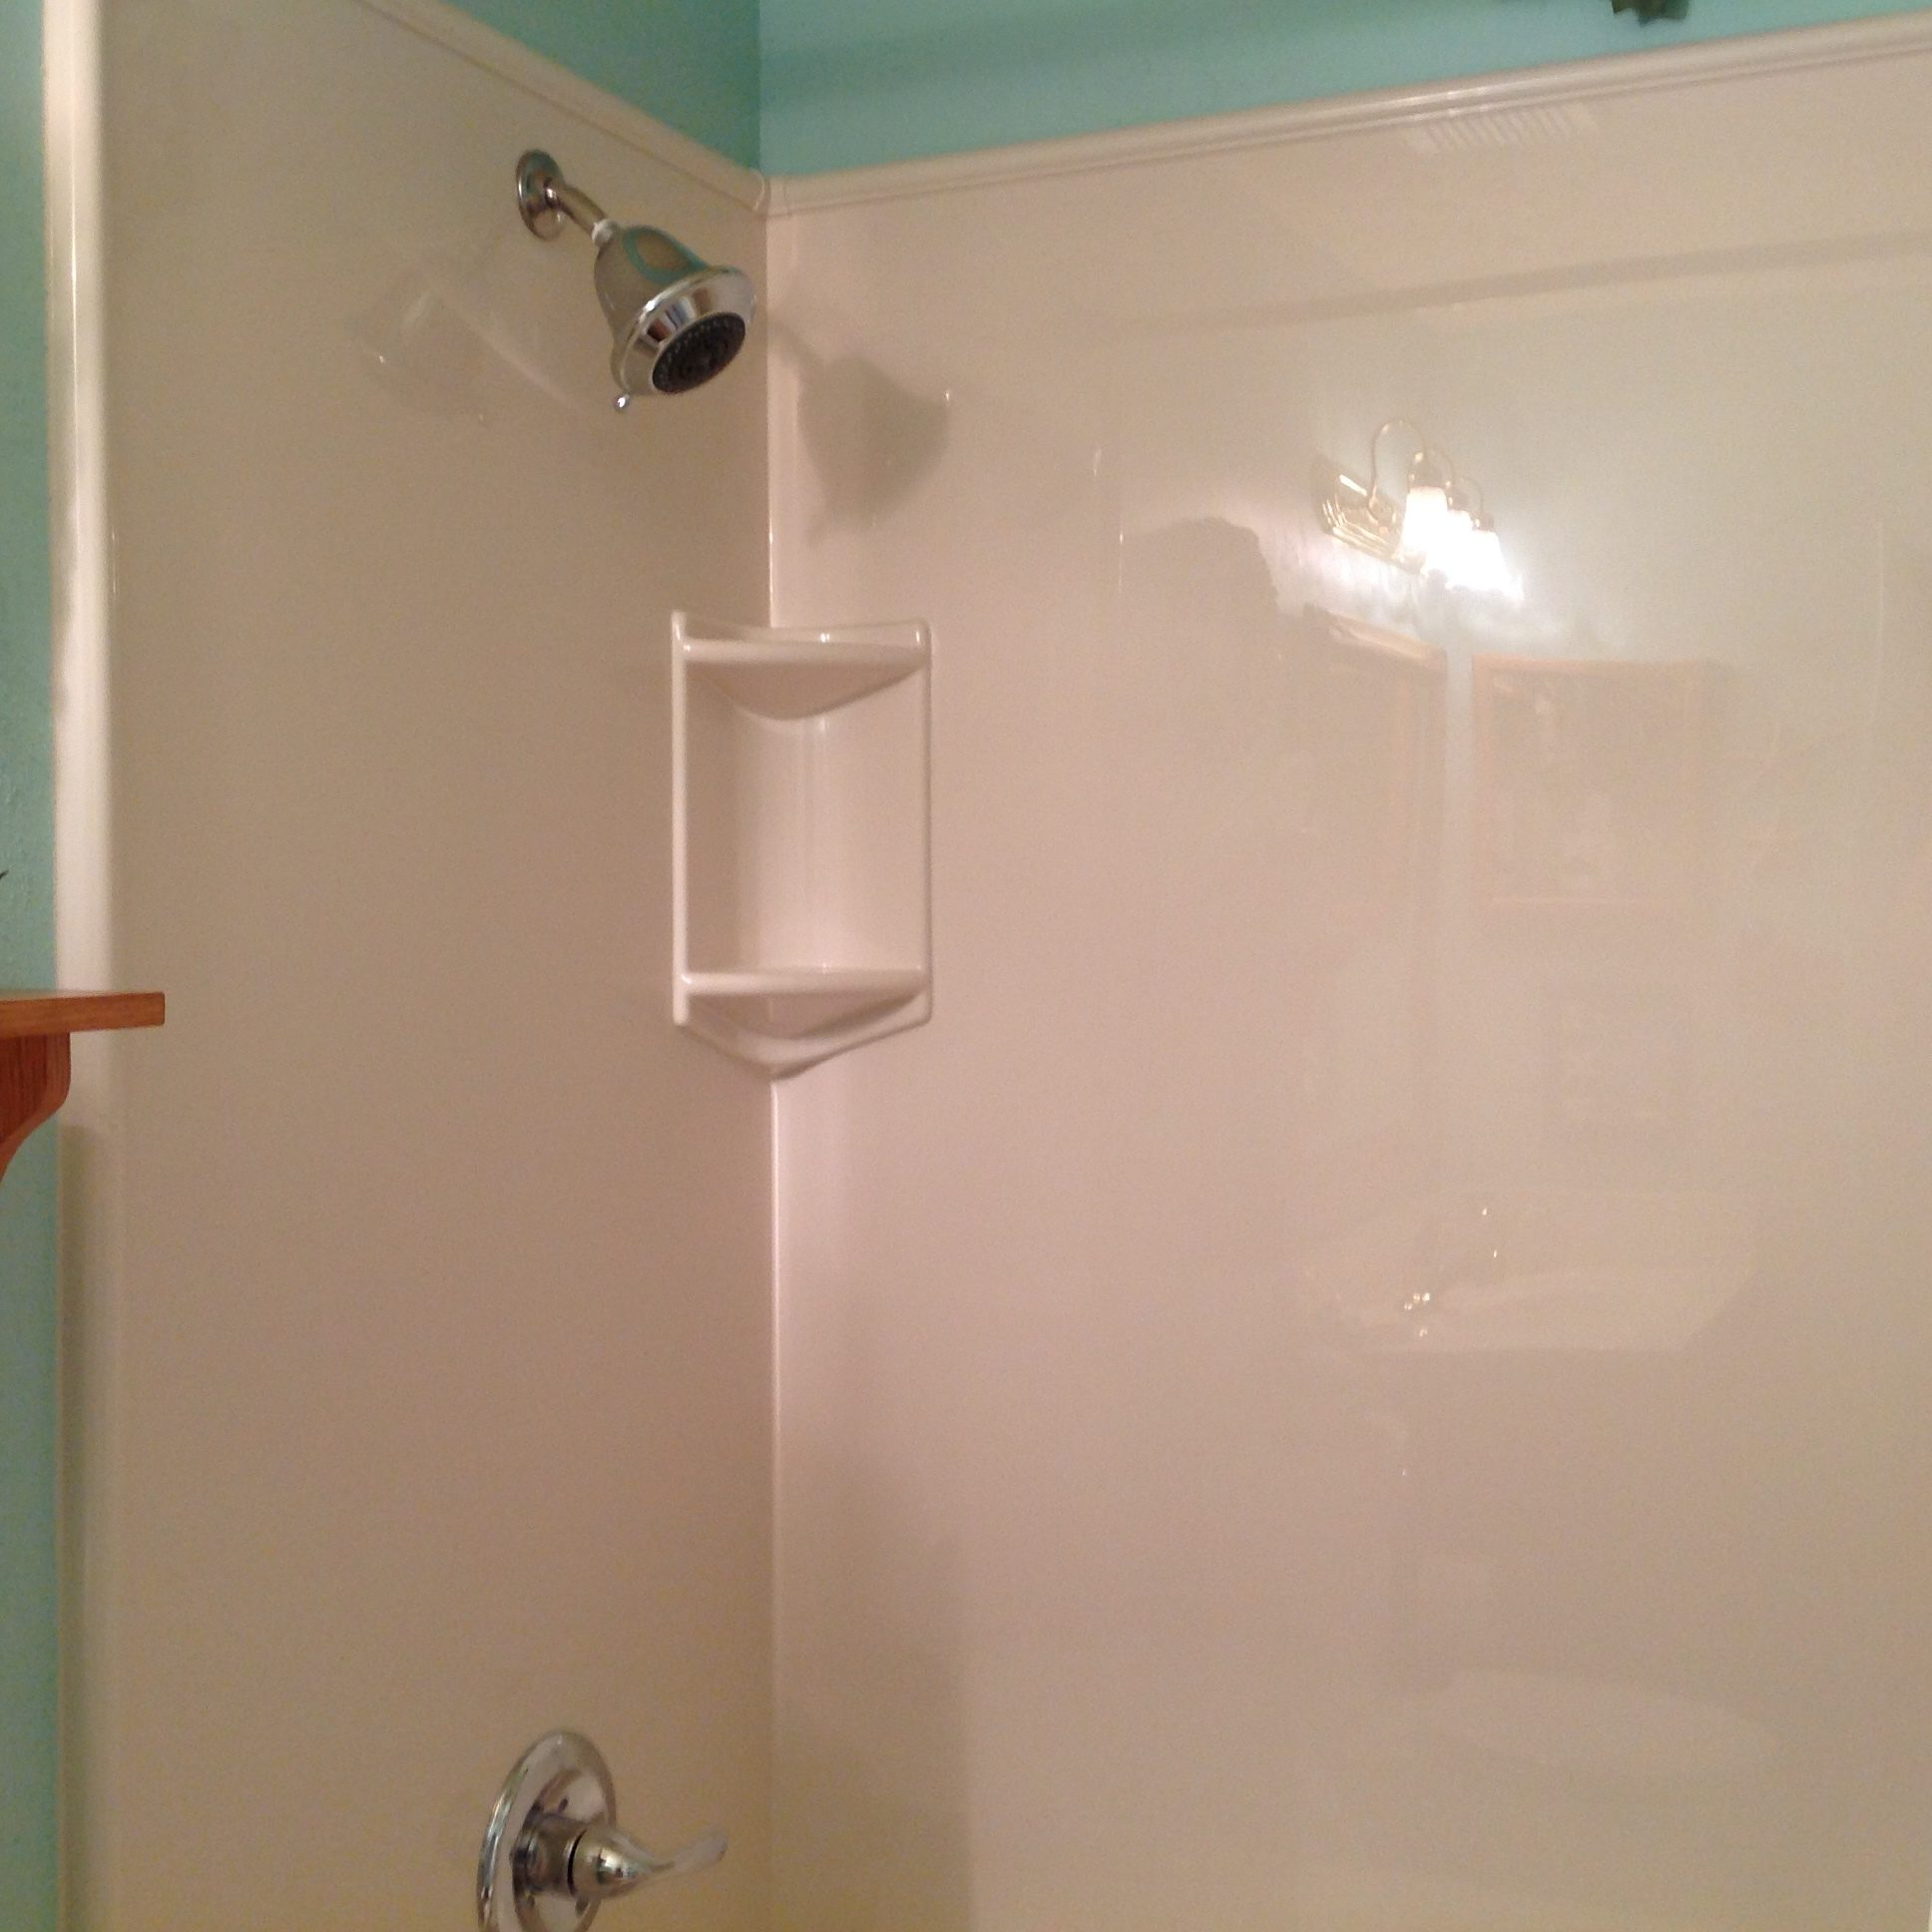 Bath Fitters Review Our new shower from Bath FittersUncle Andrew